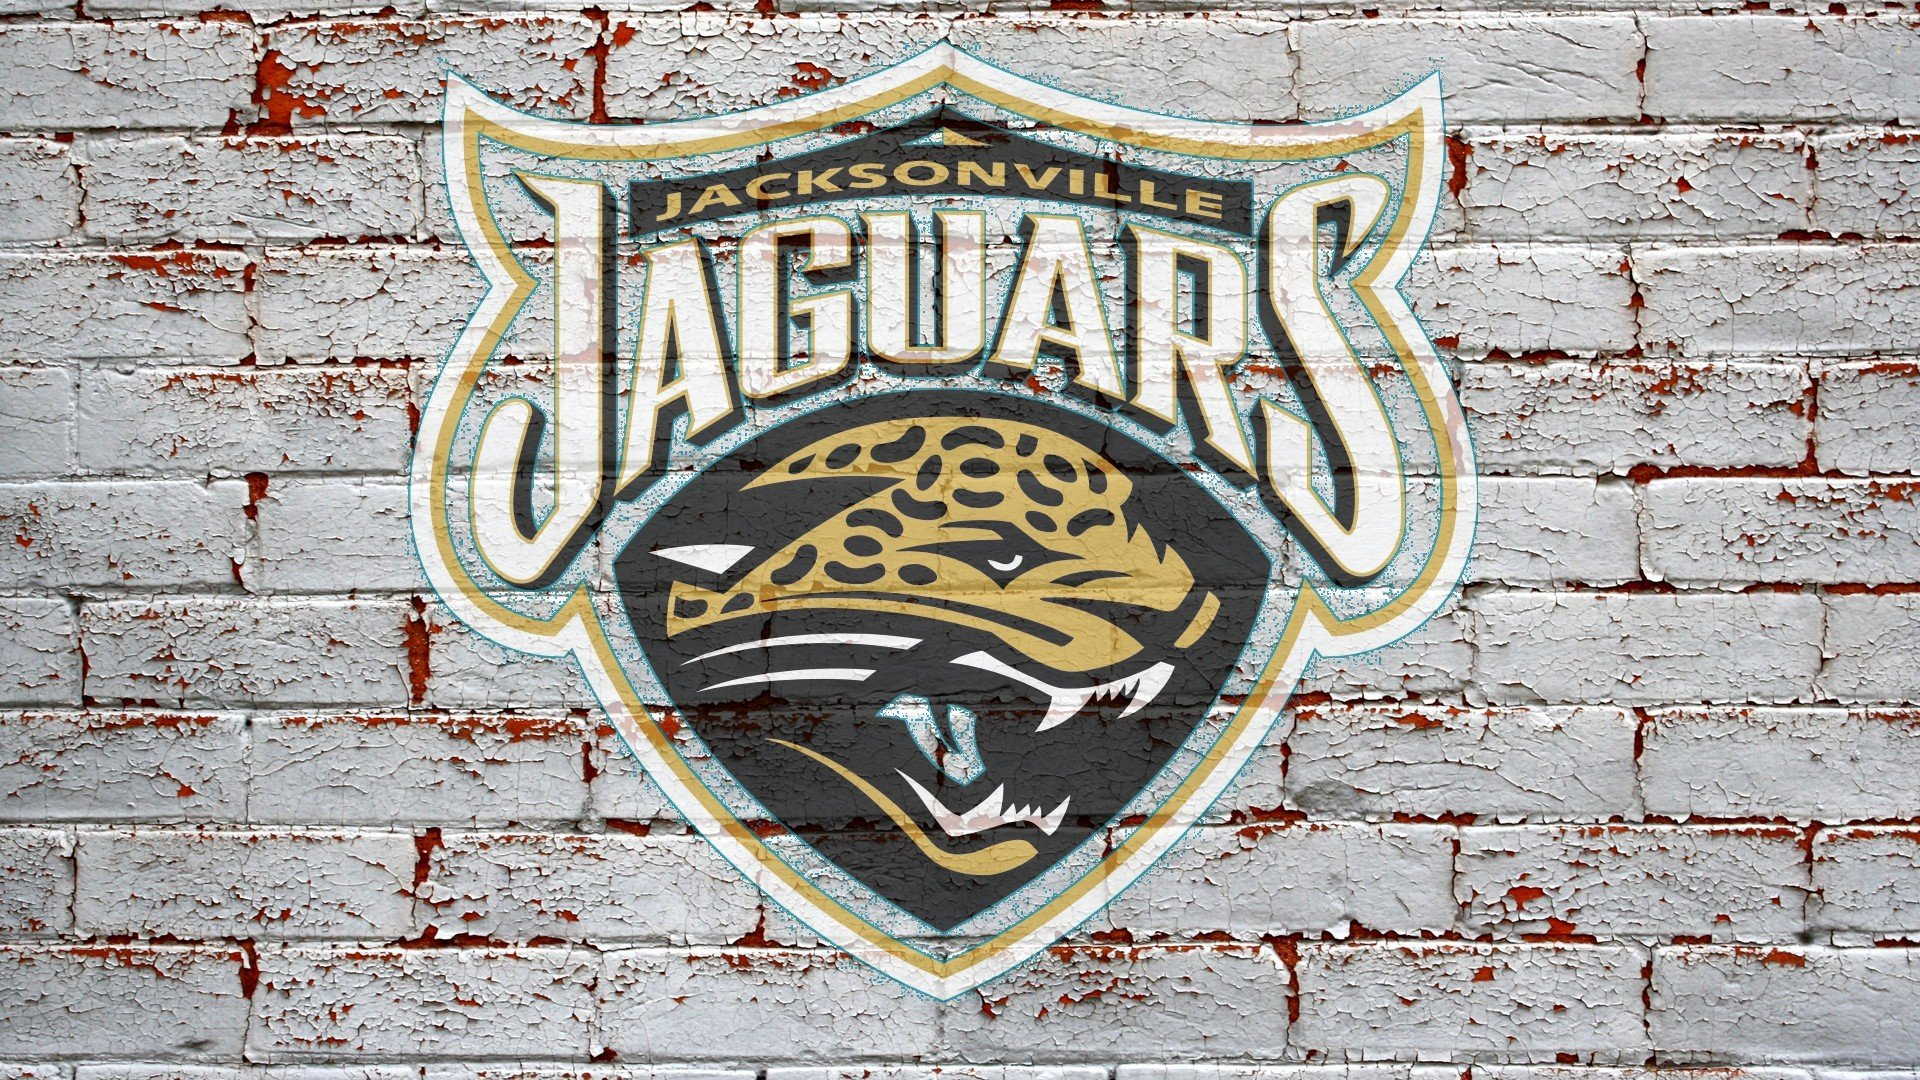 NFL Jacksonville Jaguars Logo On Grey Brick Wall 1920x1080 HD NFL 1920x1080